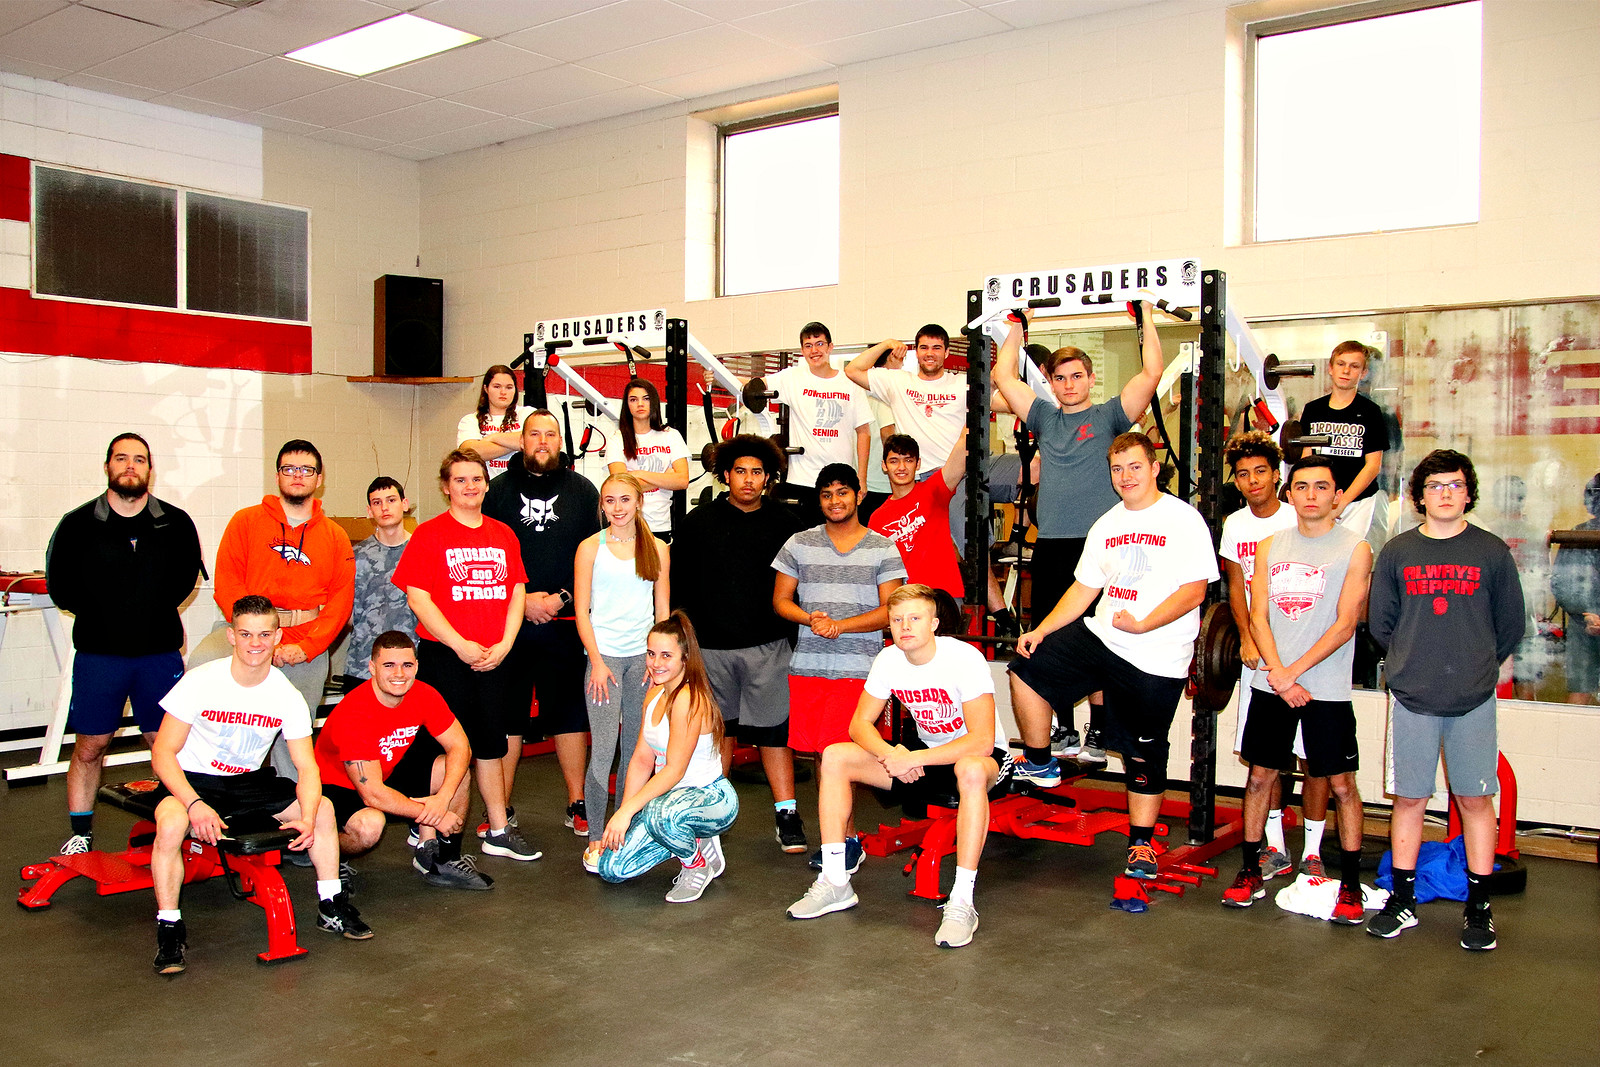 Powerlifters WHS